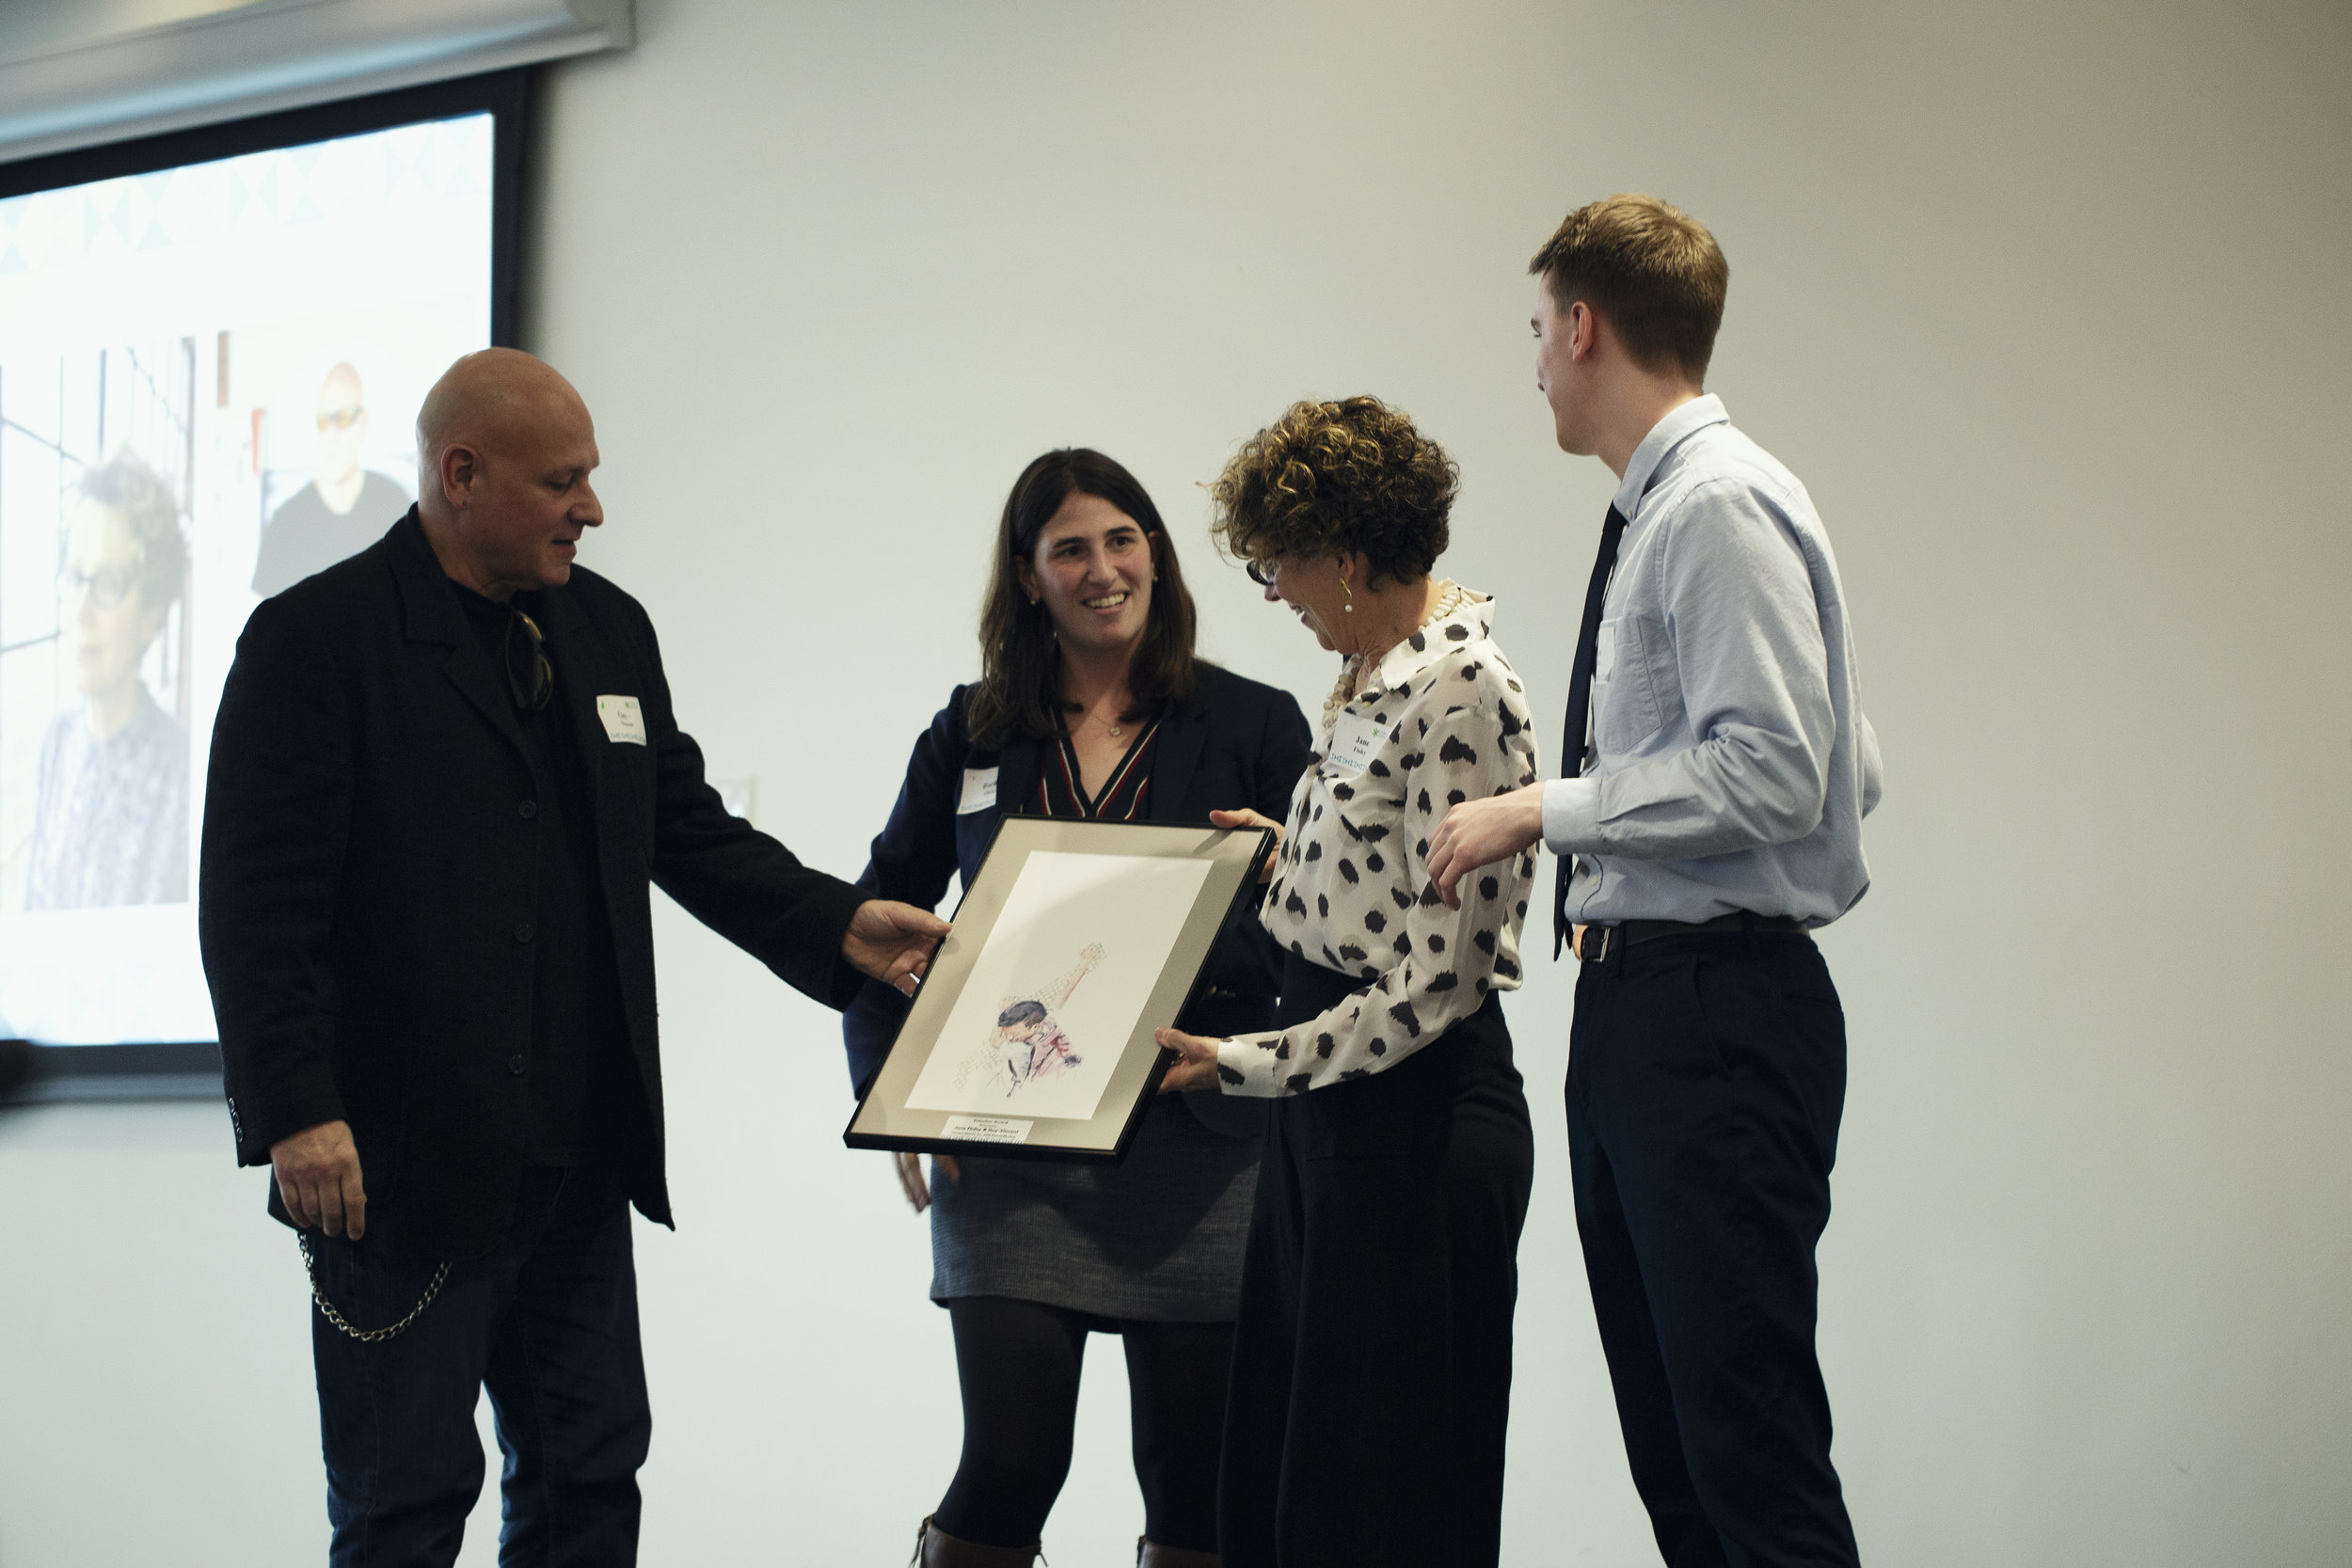 Guy-Vincent and Jane Finley accepting the Volunteer Award.